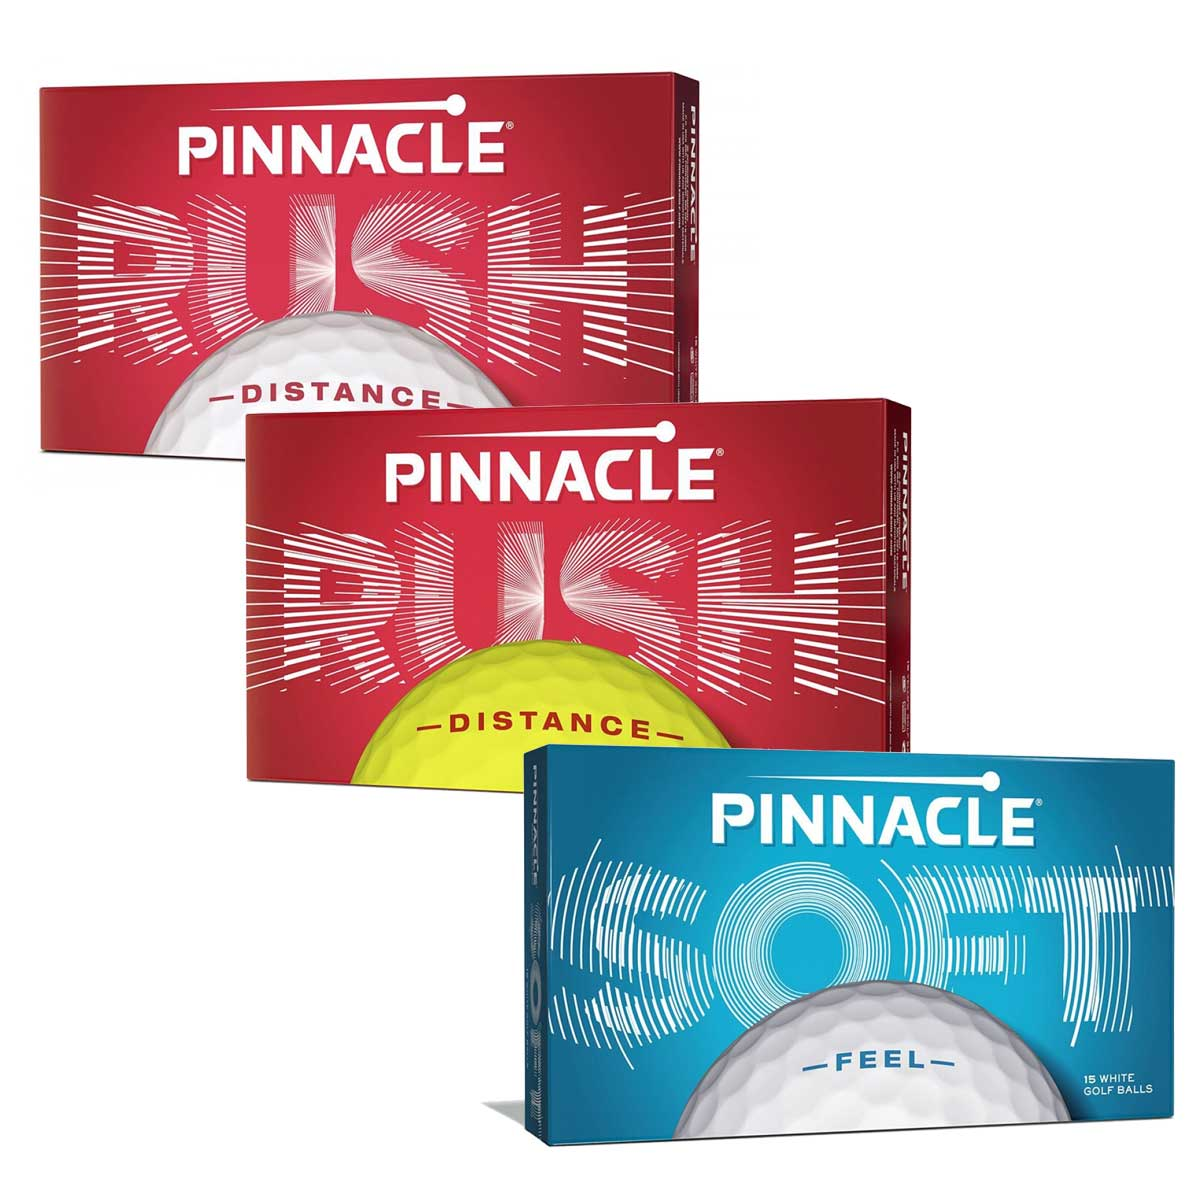 Pinnacle 15 Golf Ball Pack